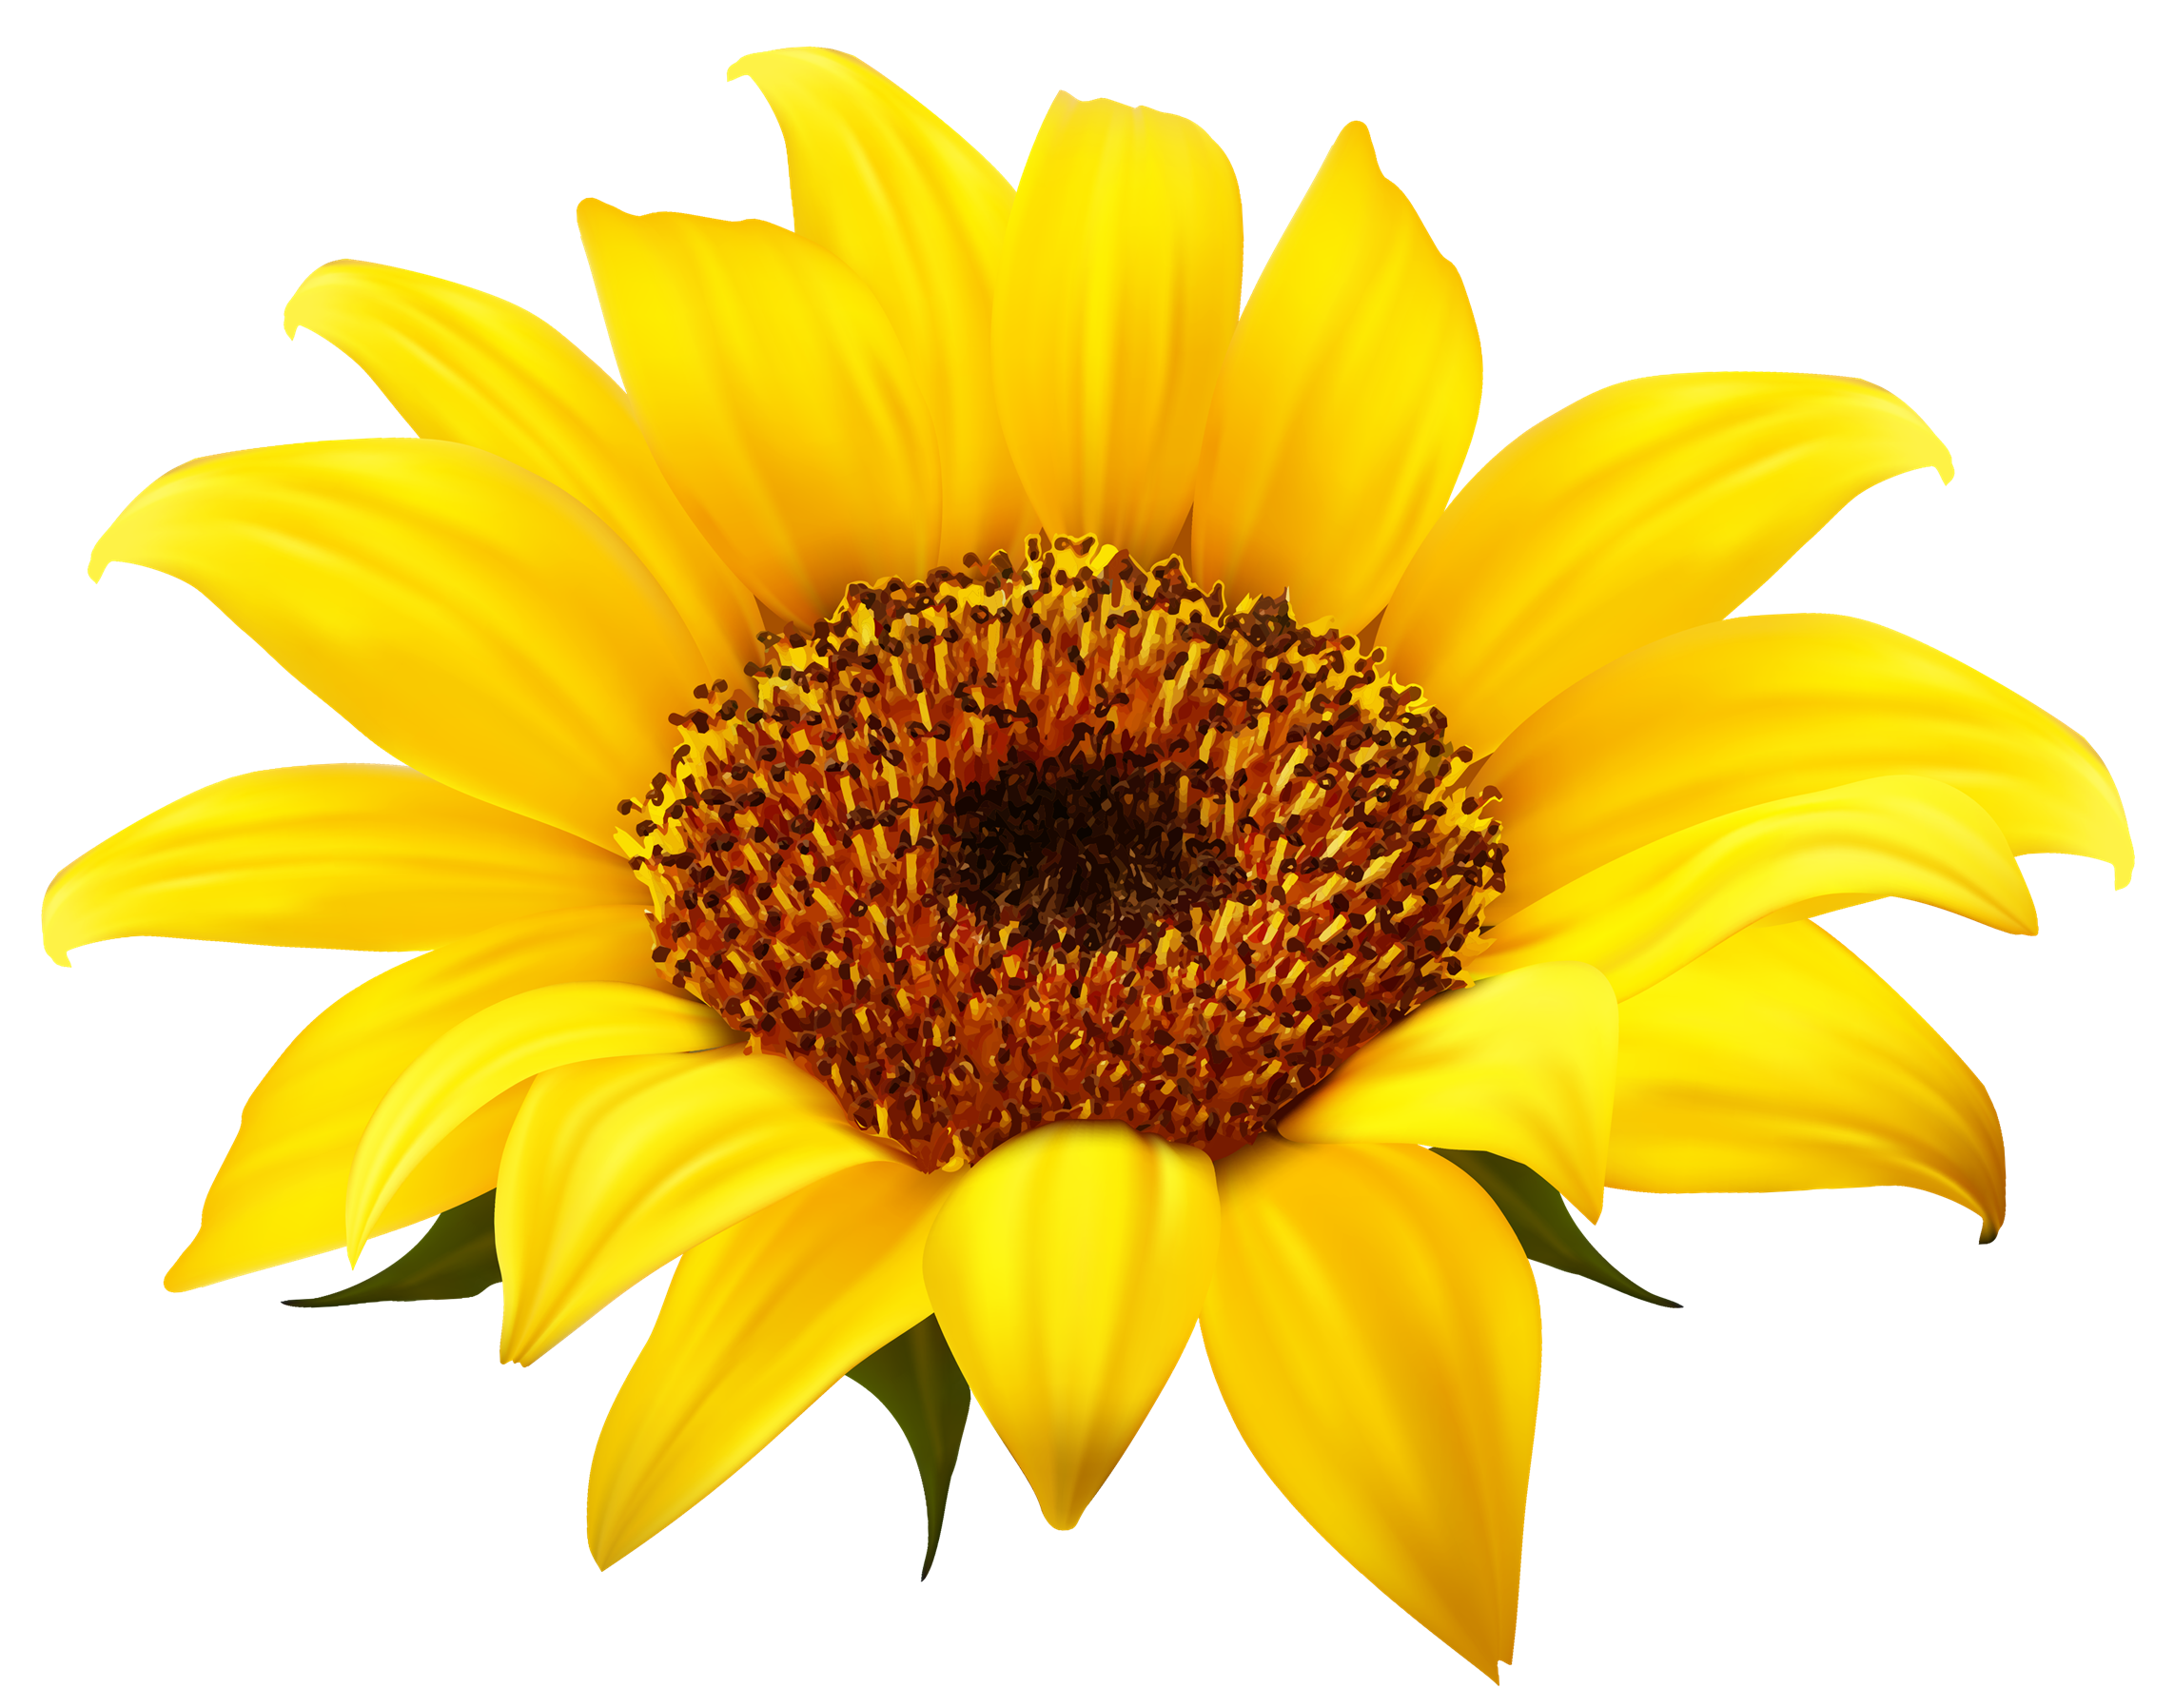 PNG Sunflower - 58127